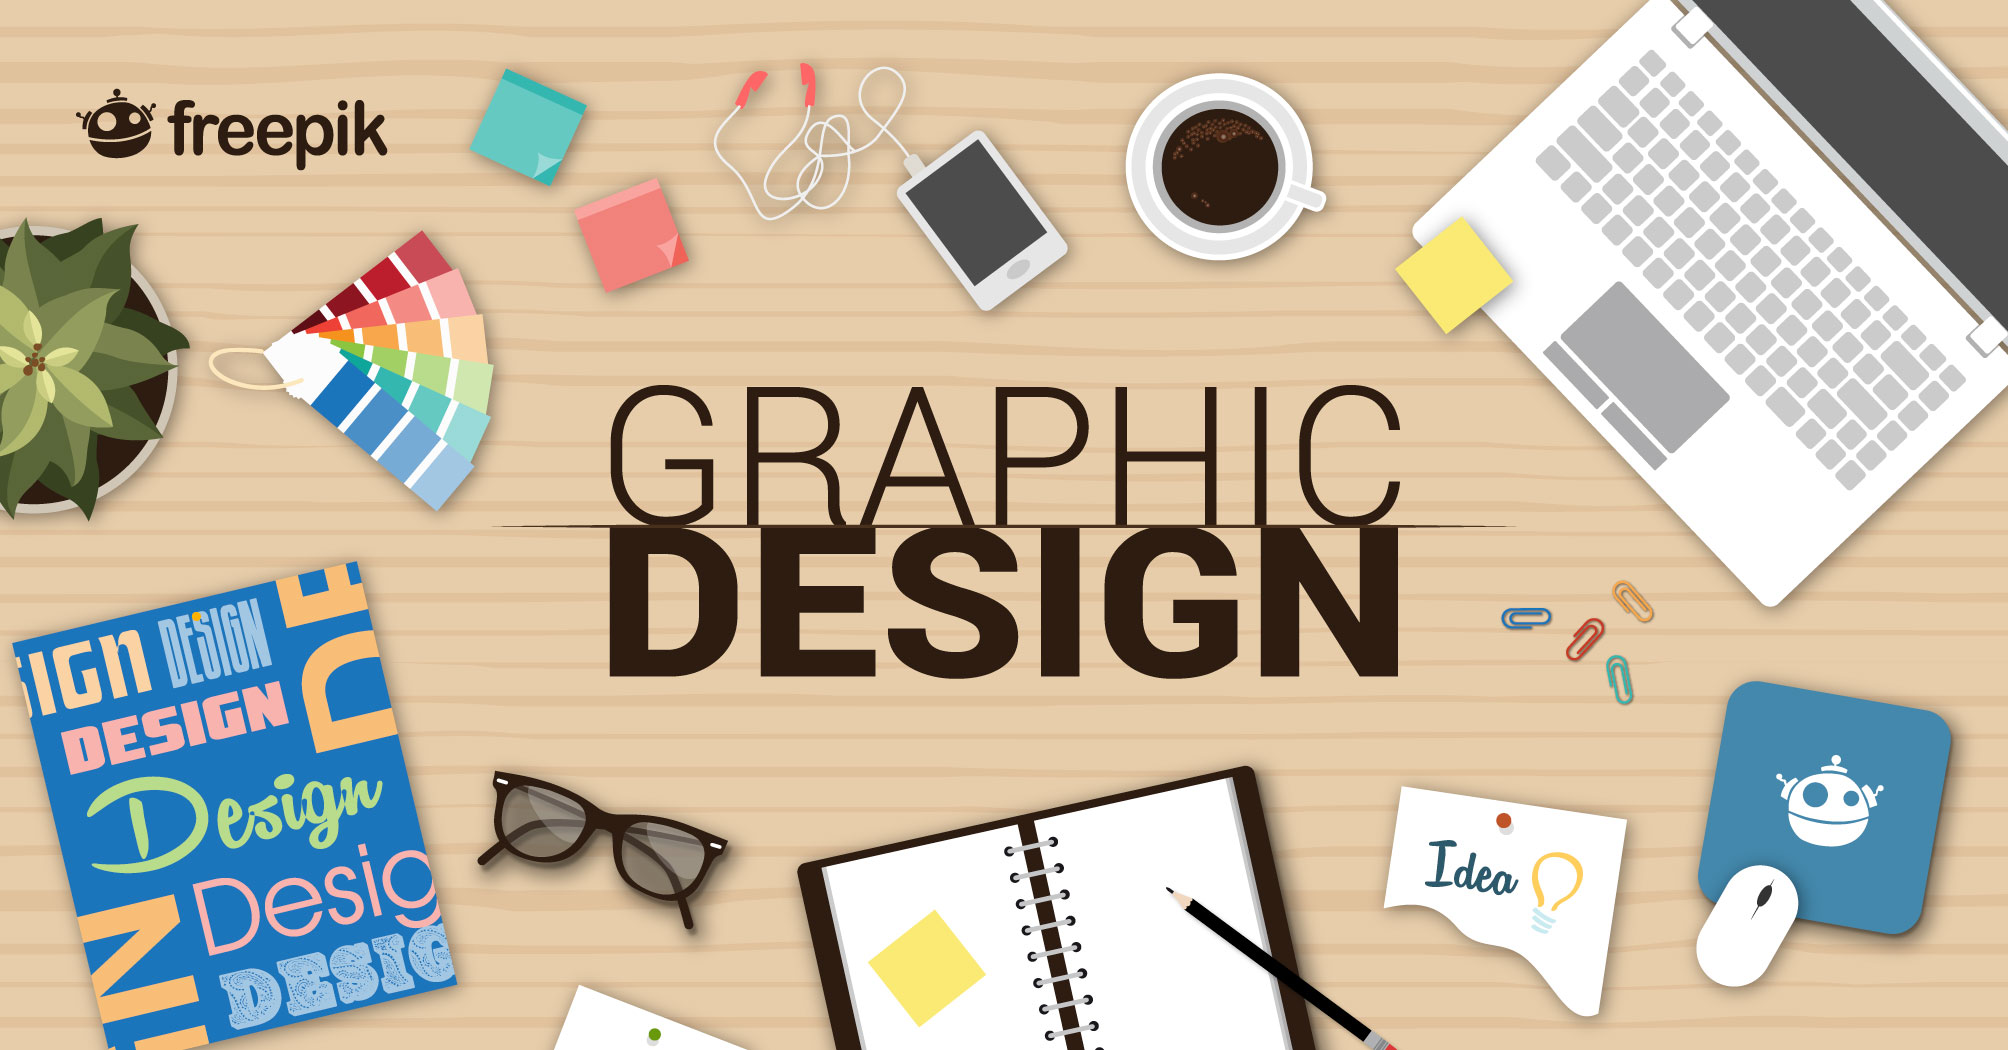 Freelance services of graphic designing for different products and services suitable to business